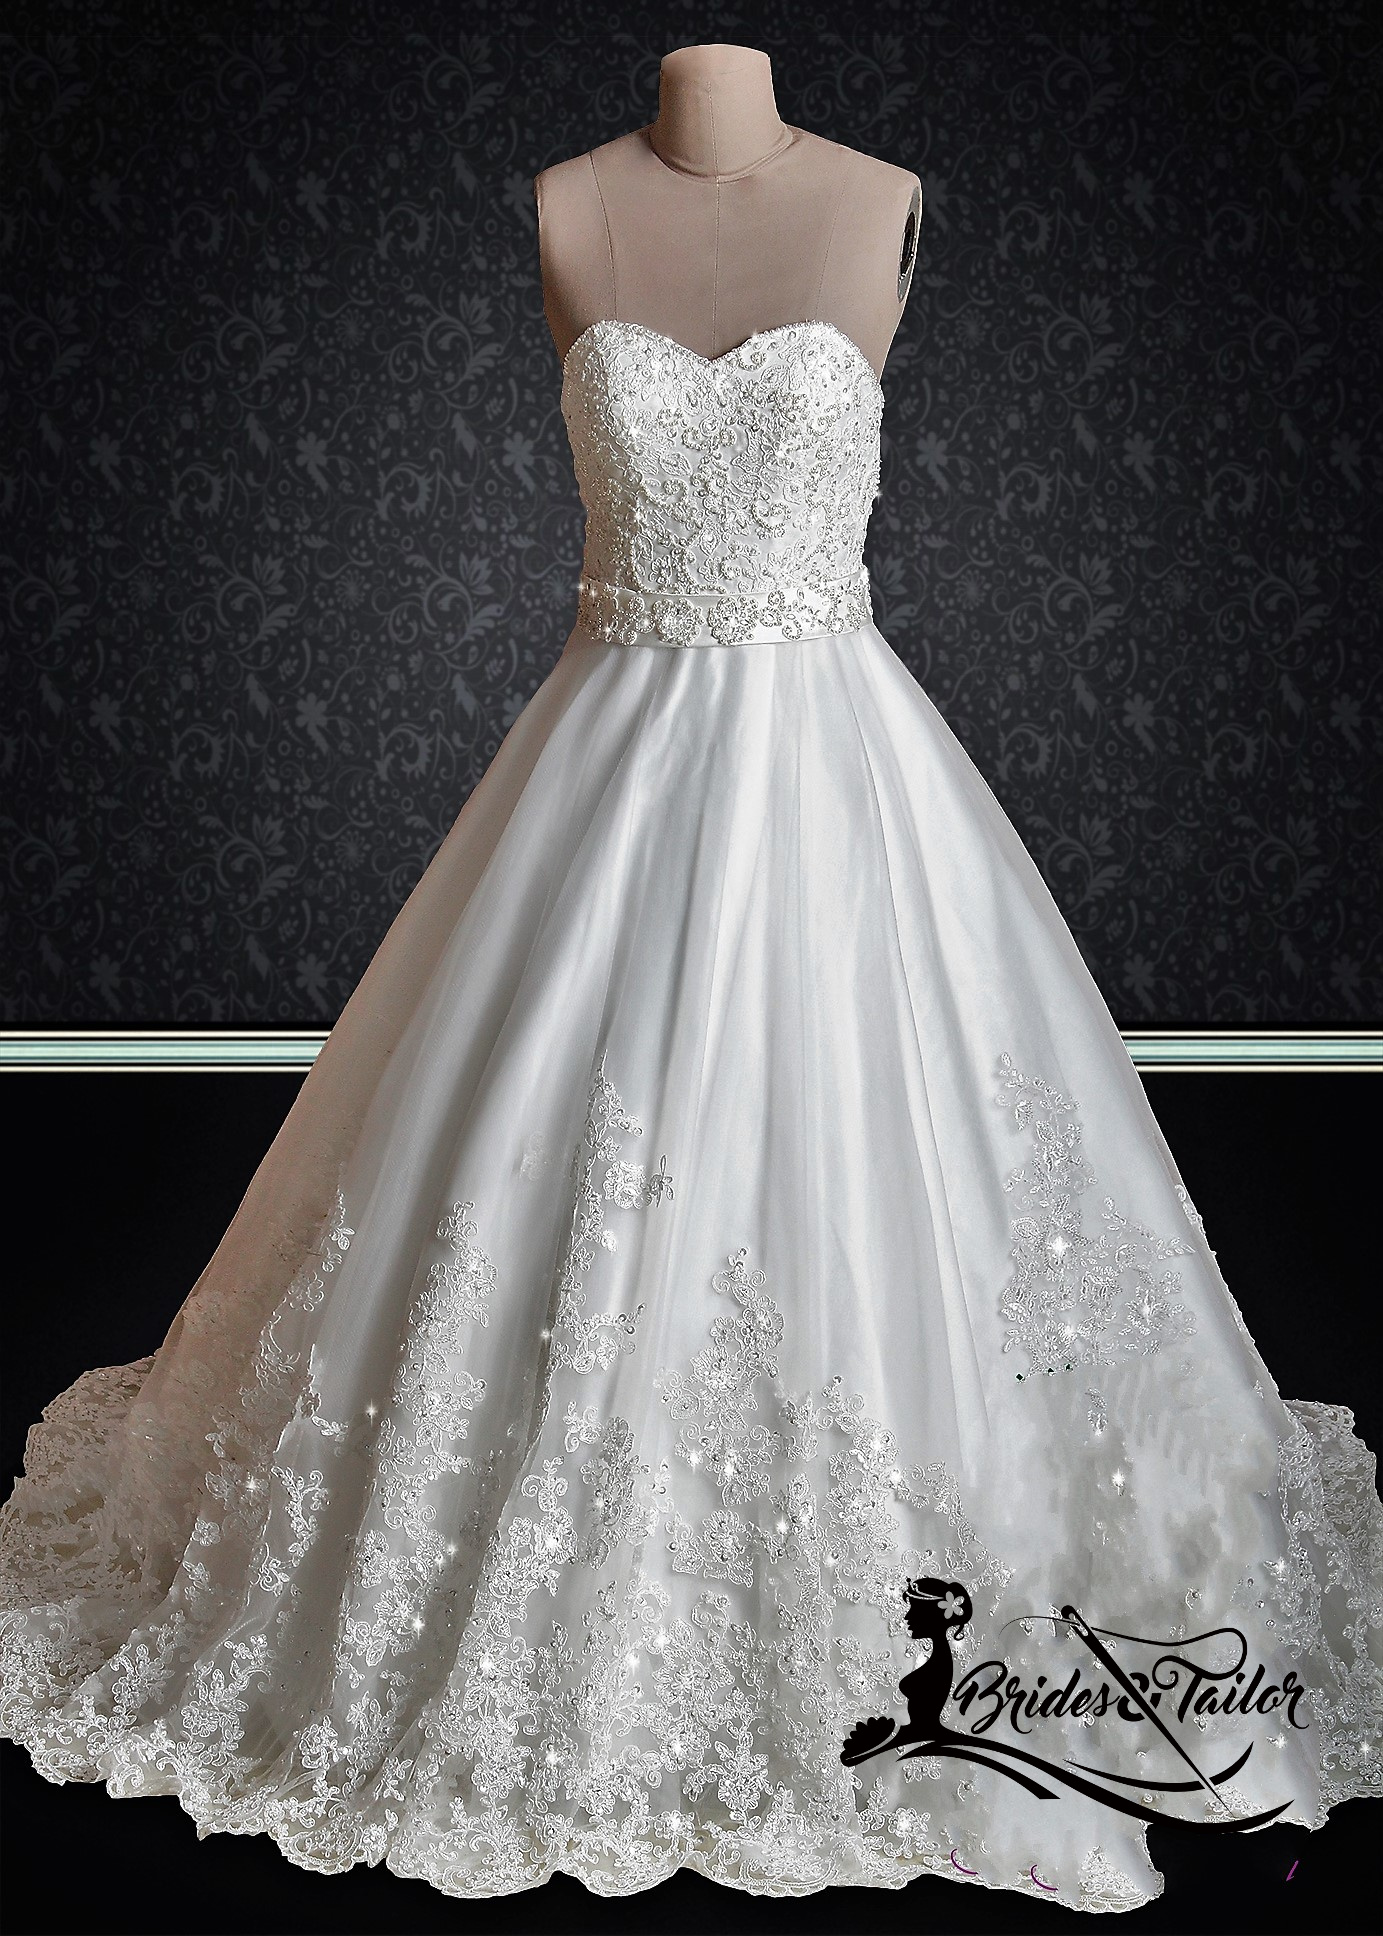 Simple yet elegant wedding dress Brides & Tailor USA